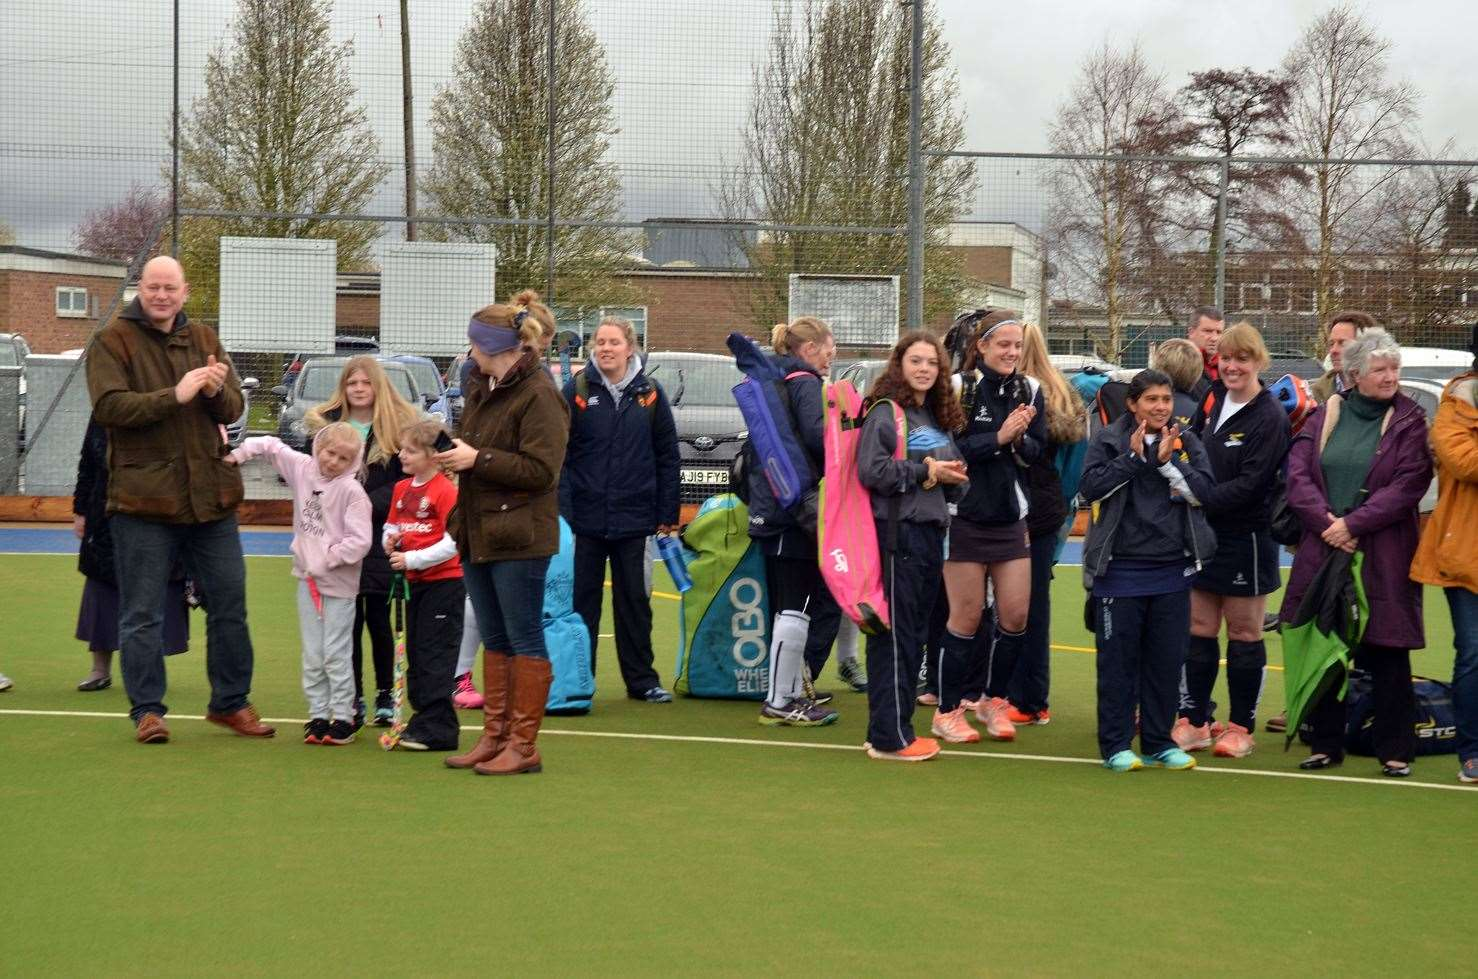 Peele Leisure Centre, Long Sutton Hockey Club, official opening of new pitch, followed by Long Sutton ladies v Ipswich ladies, Tape cutting captain Tania White, Peter Worth, Nick Worth, fund raising Lynne Braggington, Lorrianne Wallis, Steward Wright, Stef Fox, (31642090)